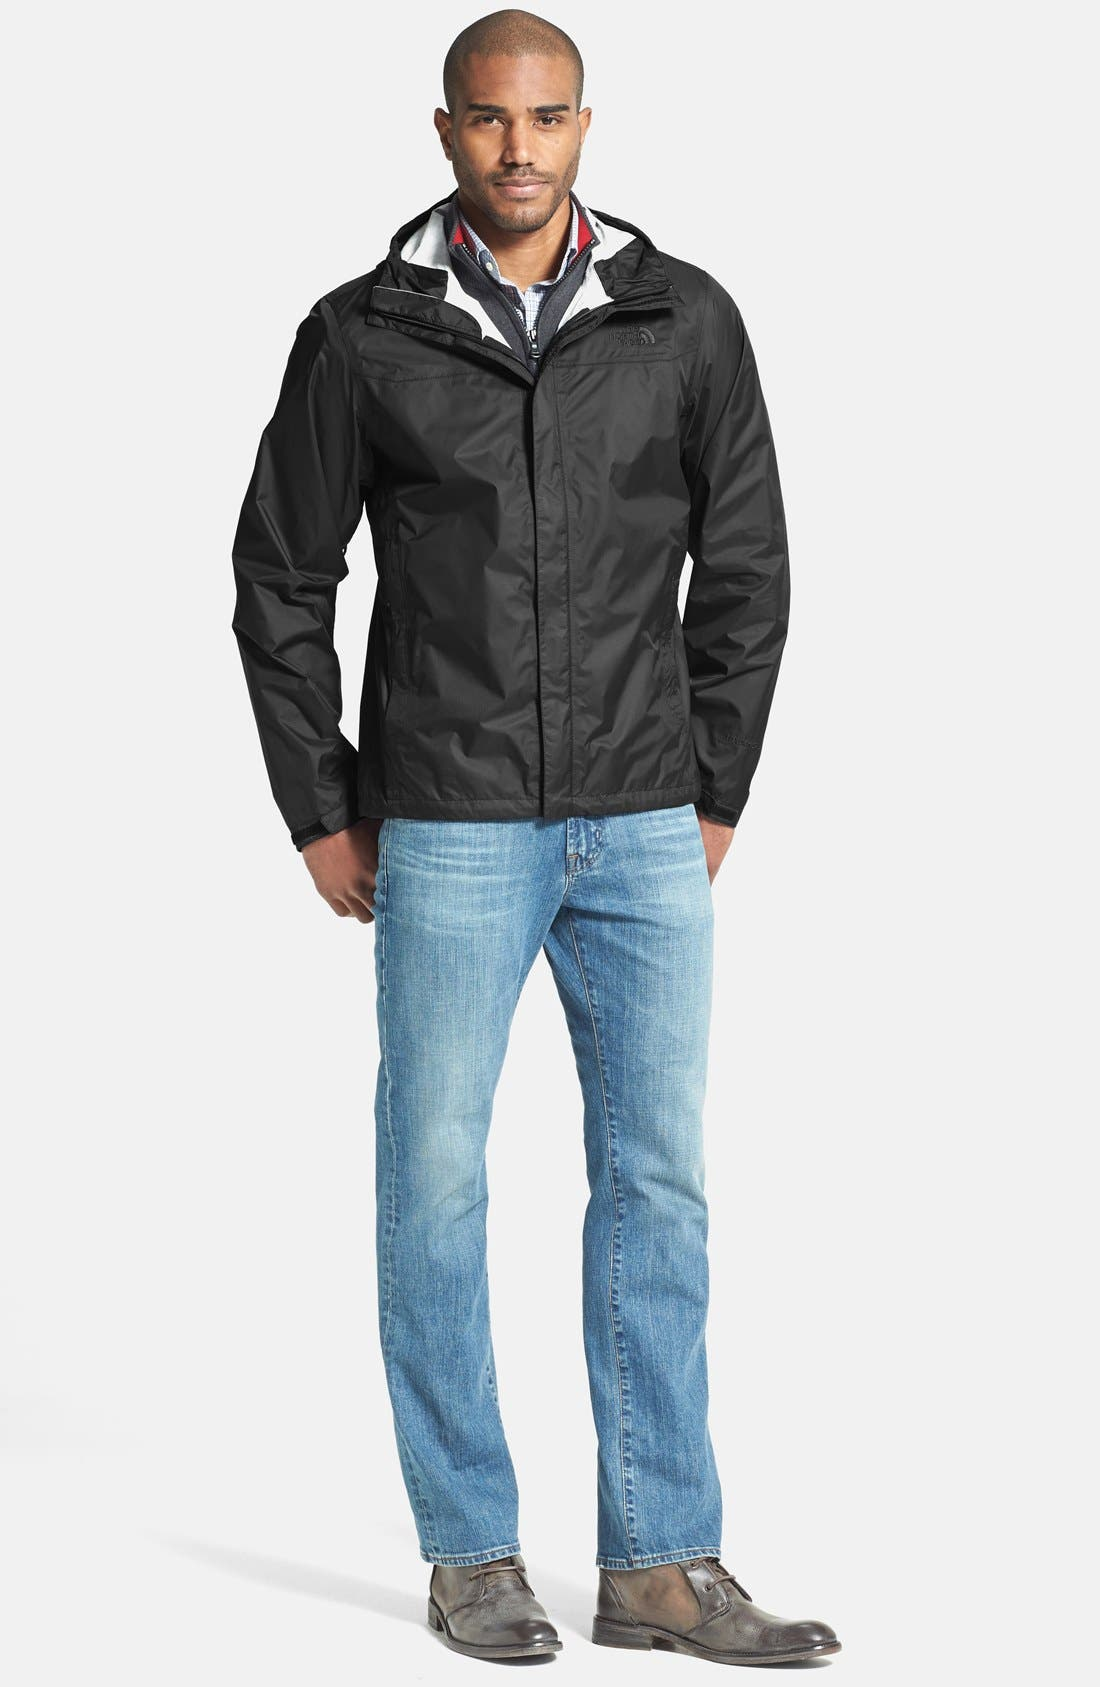 THE NORTH FACE,                             Venture Waterproof Jacket,                             Alternate thumbnail 6, color,                             001